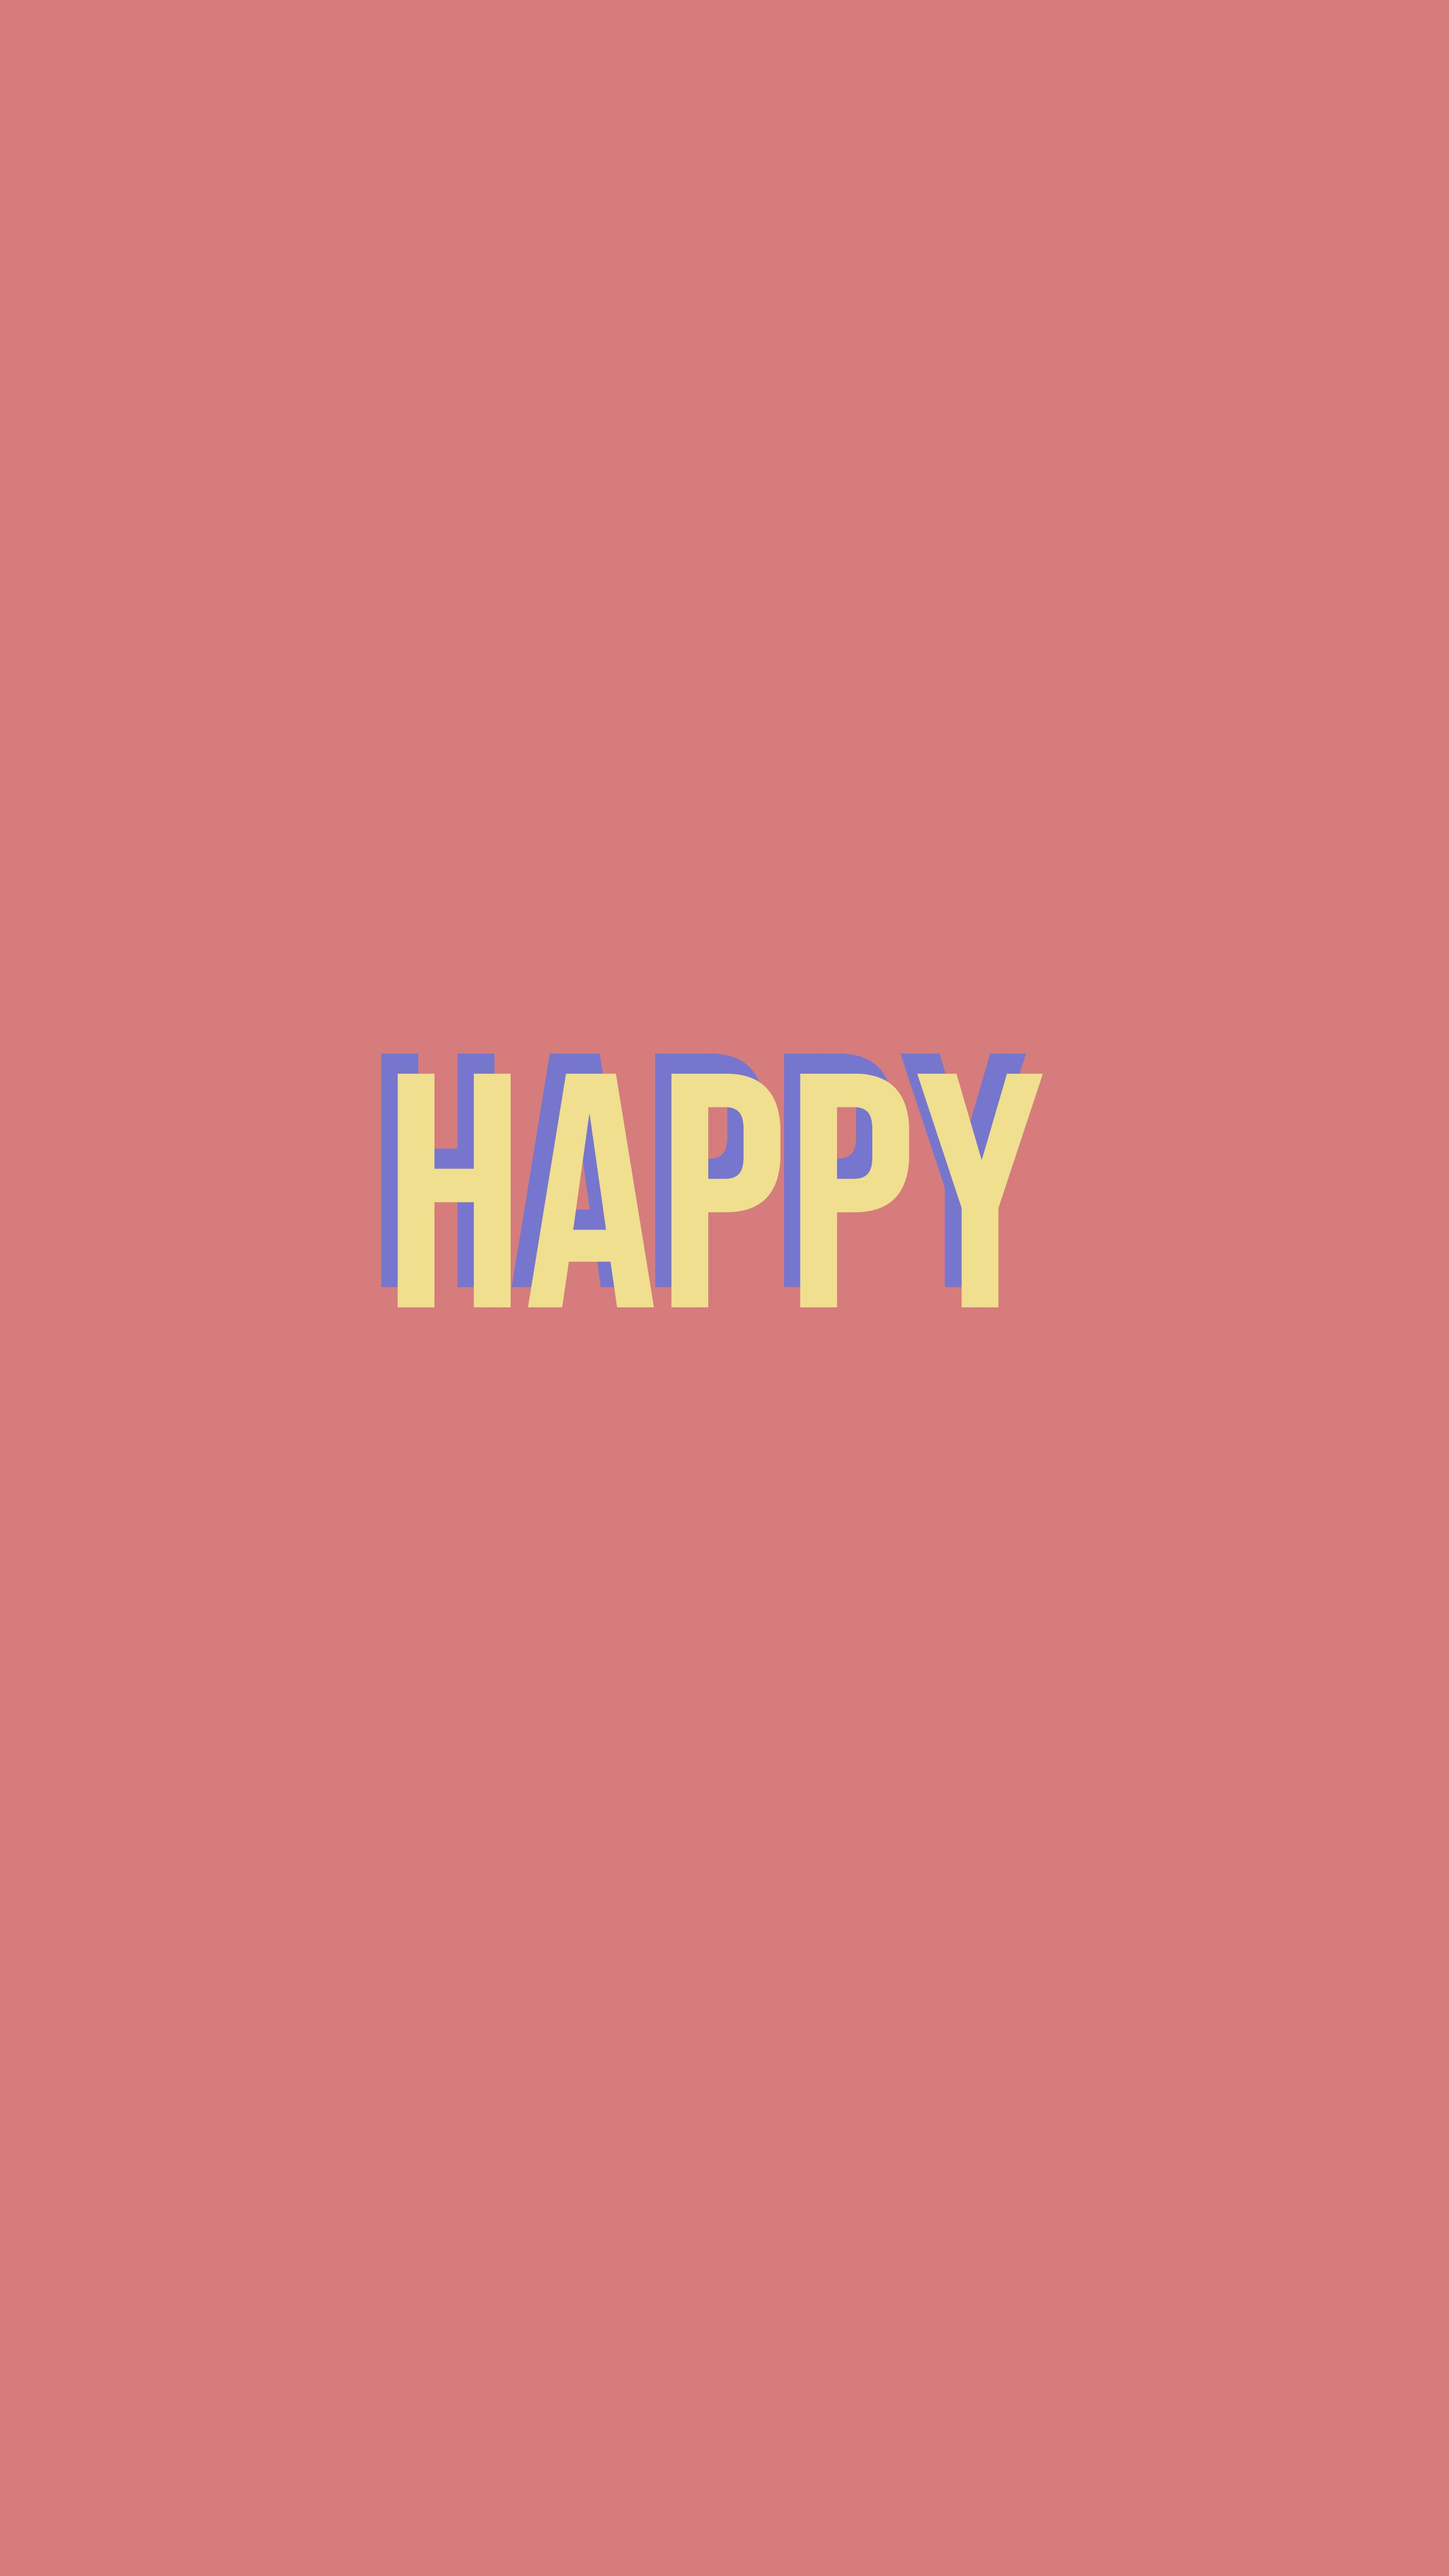 quote #words #pink #happy #background #wallpaper #iphone #plus